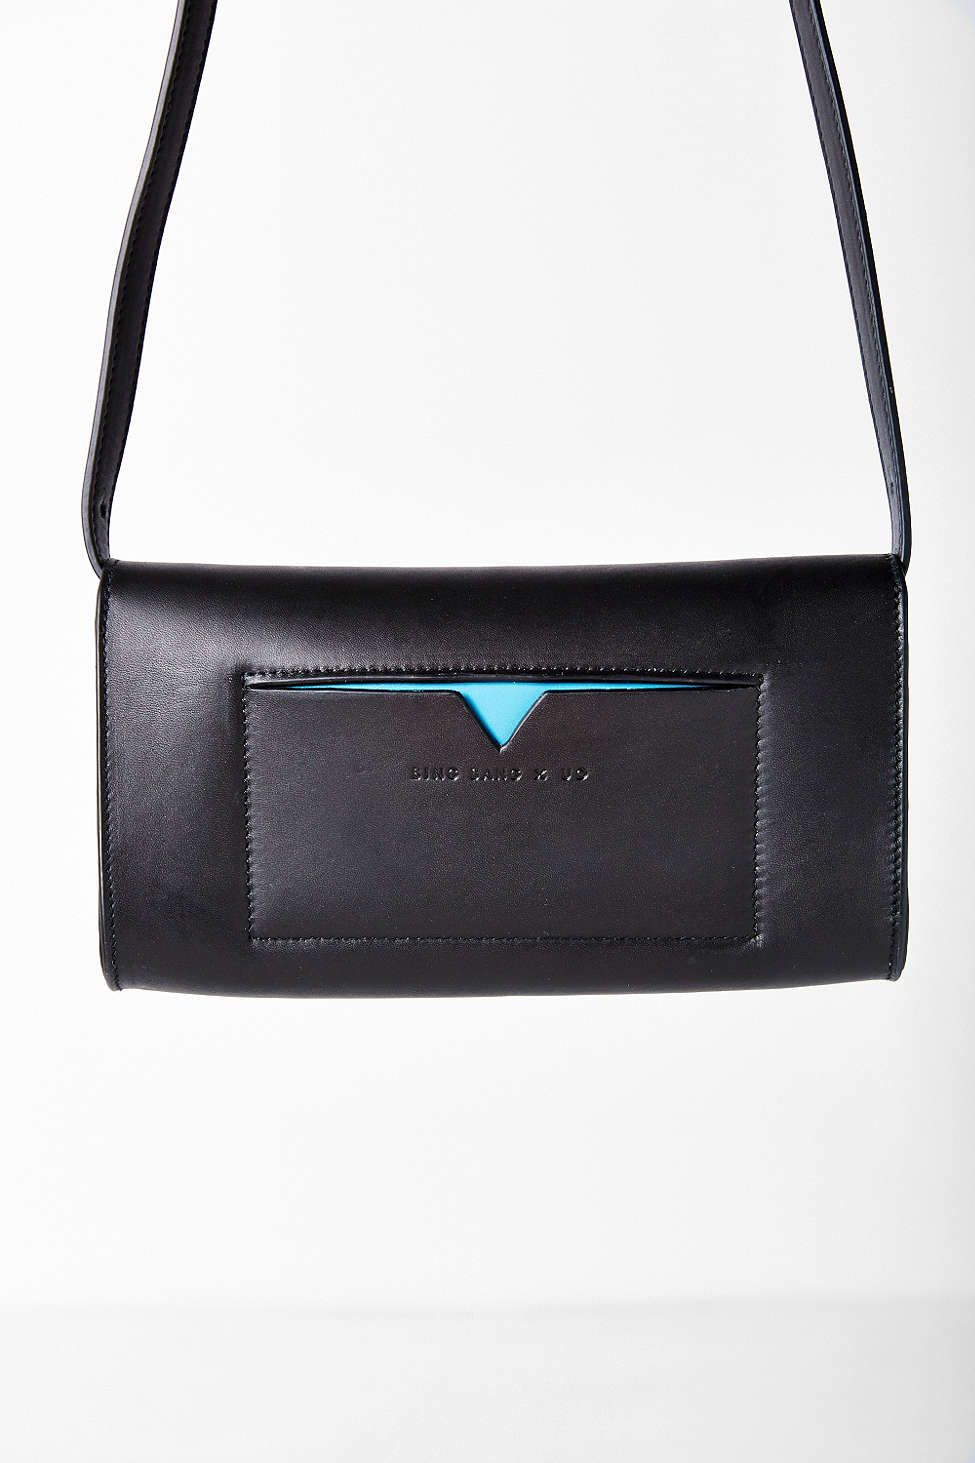 Bing Bang x UO Crossbody Bag - structured black leather with a pop of sky blue and luxe minimal gold hardware! So chic!